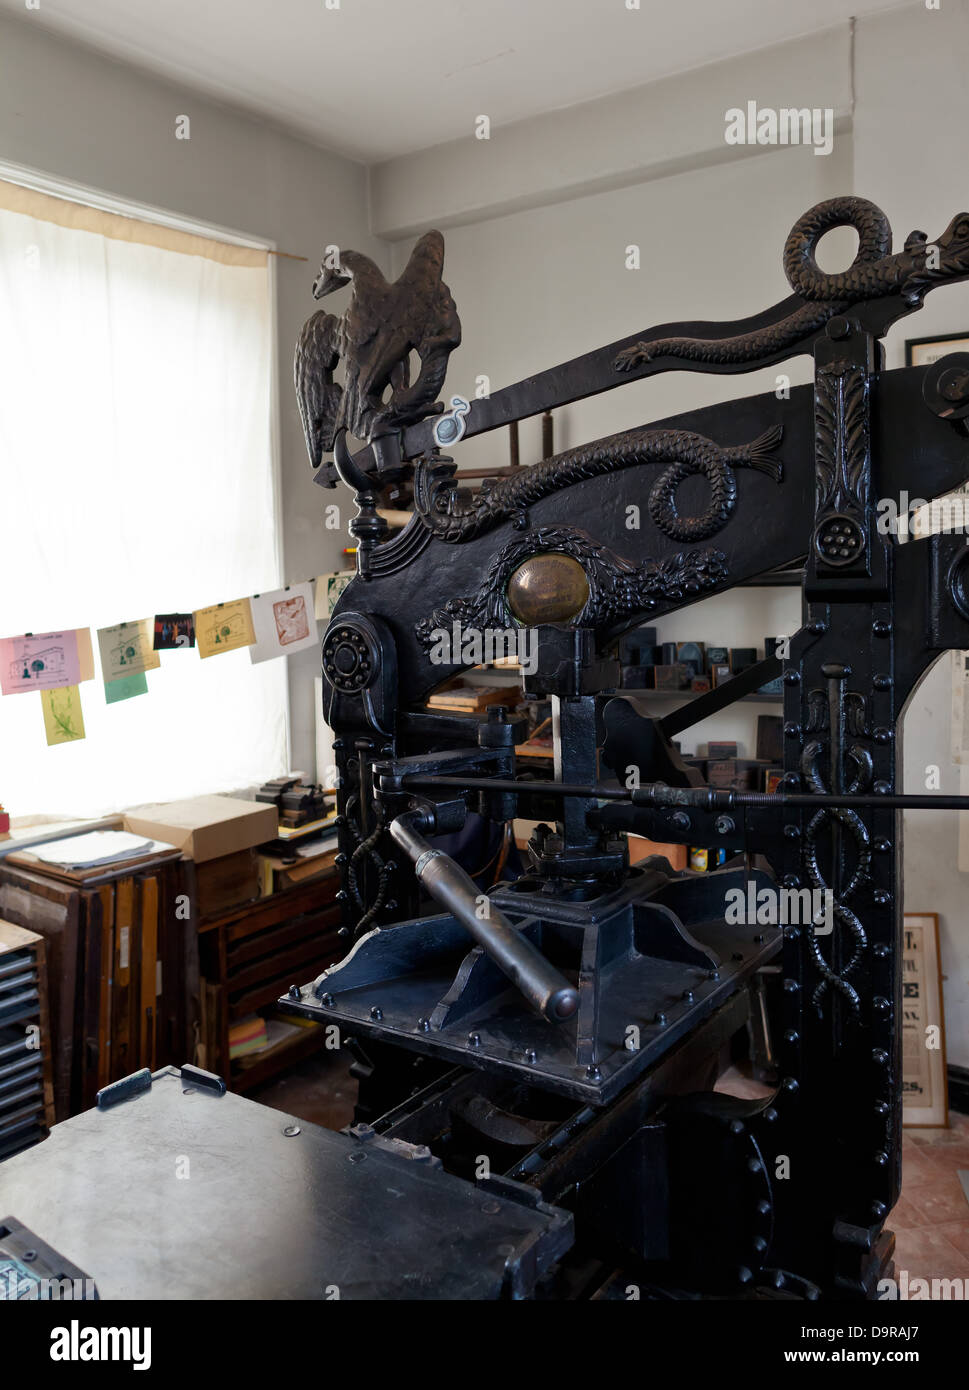 D Printer Exhibition Uk : Lincoln victorian printing press exhibition at the